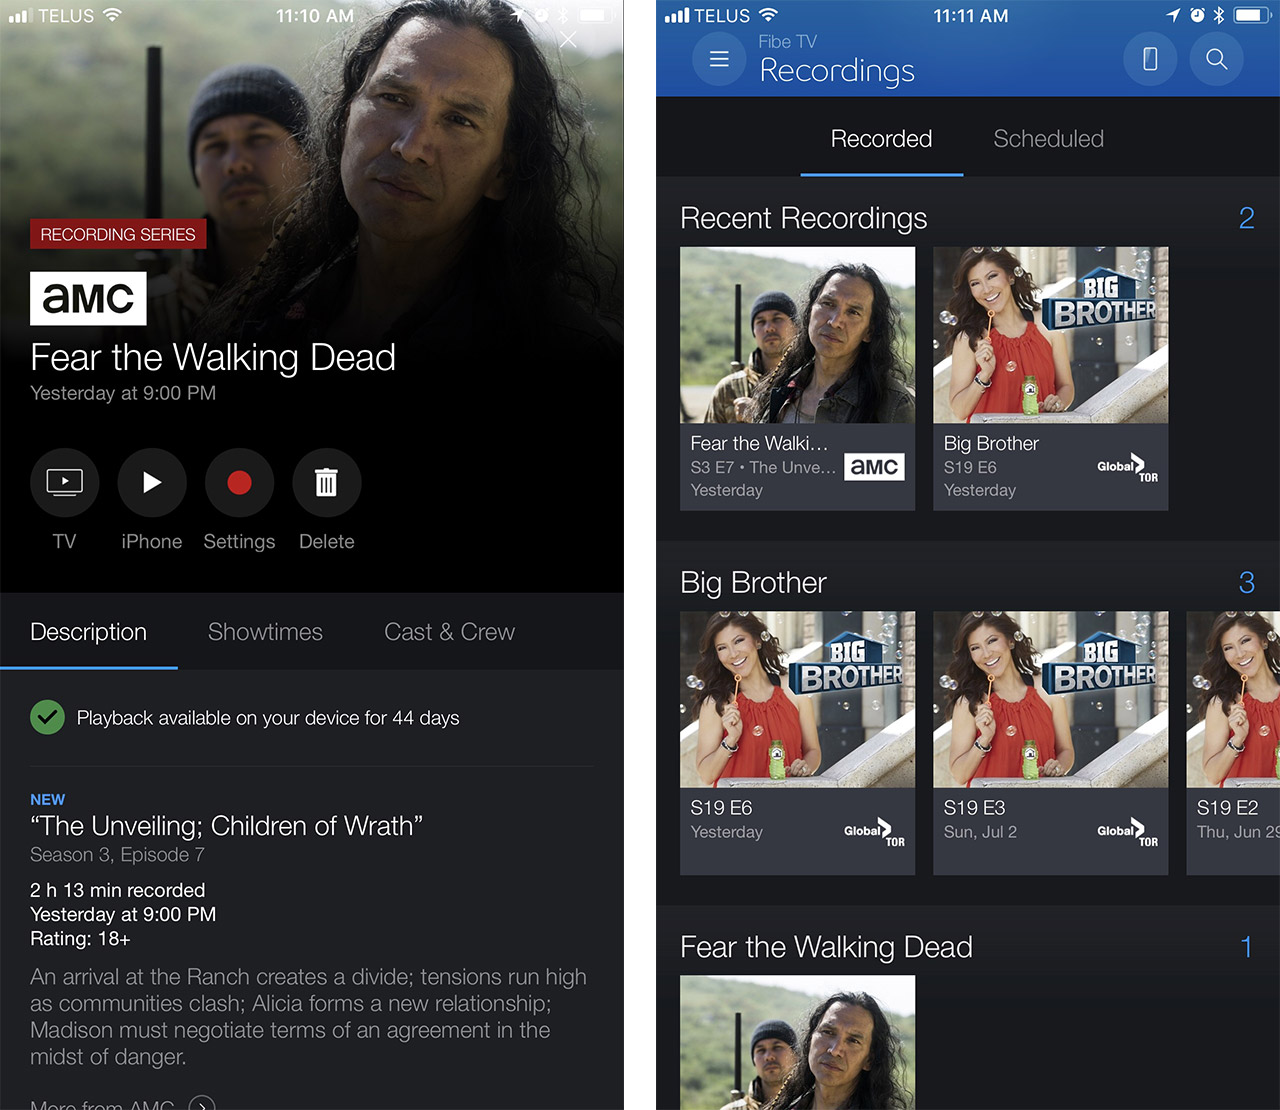 Bell Fibe TV iOS and Apple TV app can now play DVR recordings